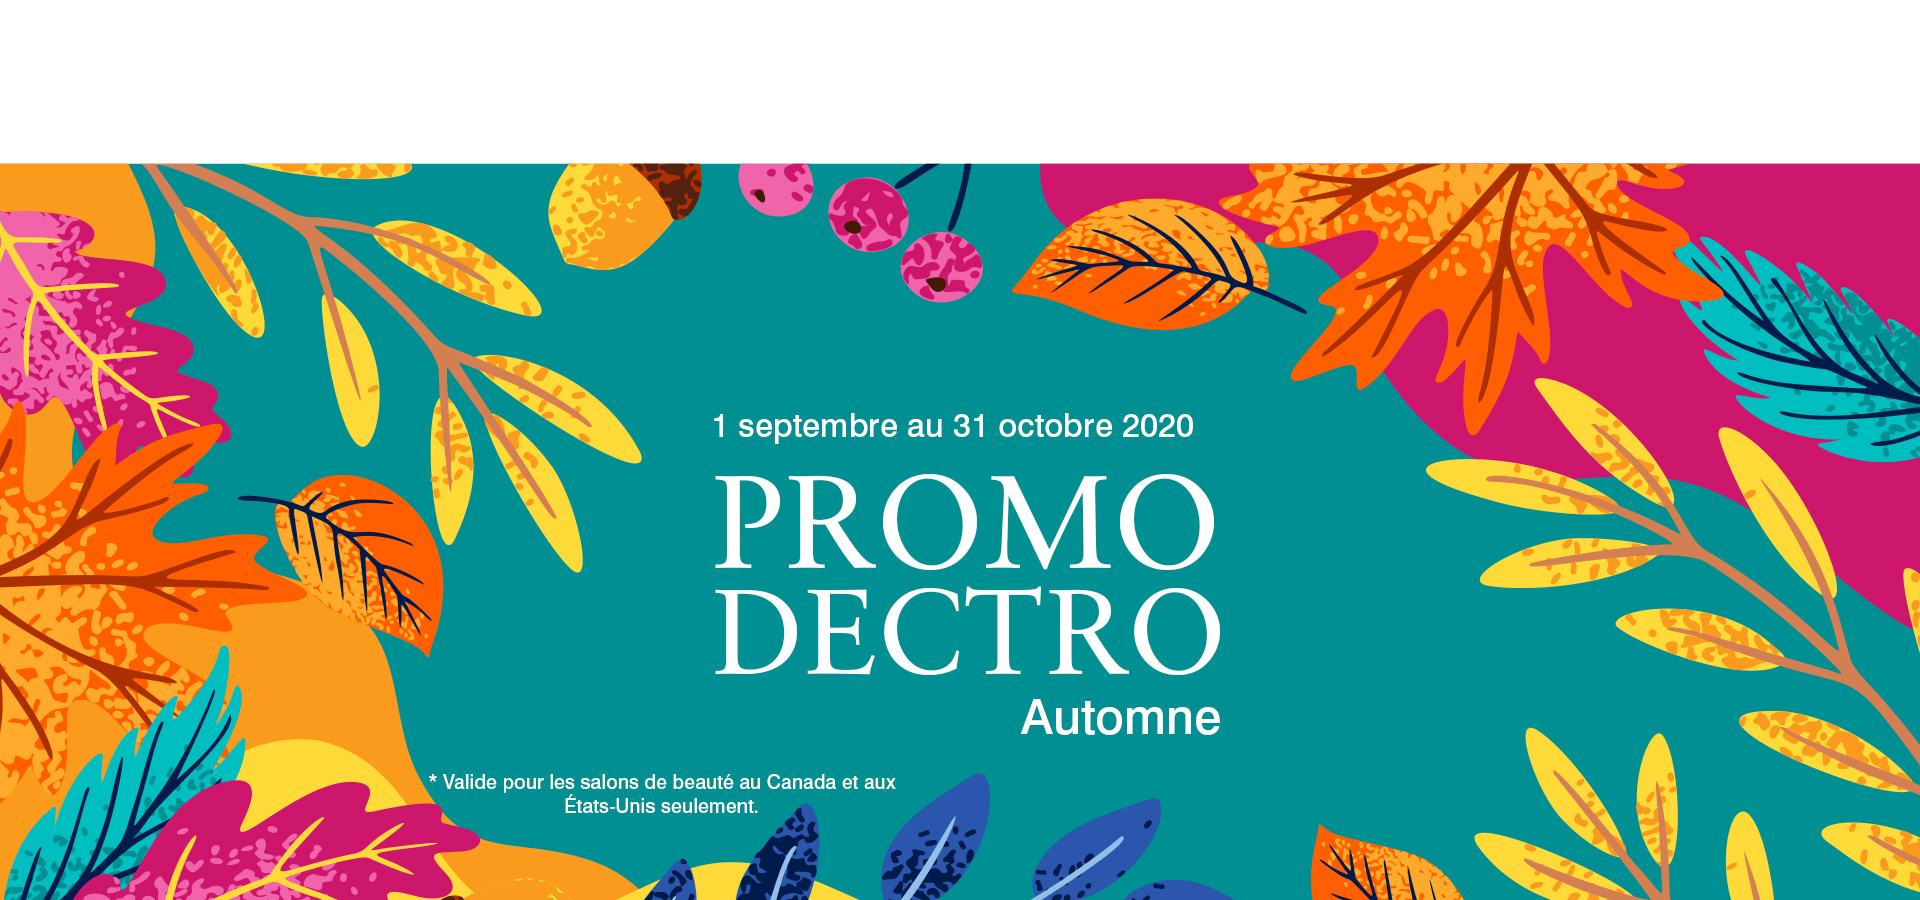 carroussel_promodectro-automne_fr20